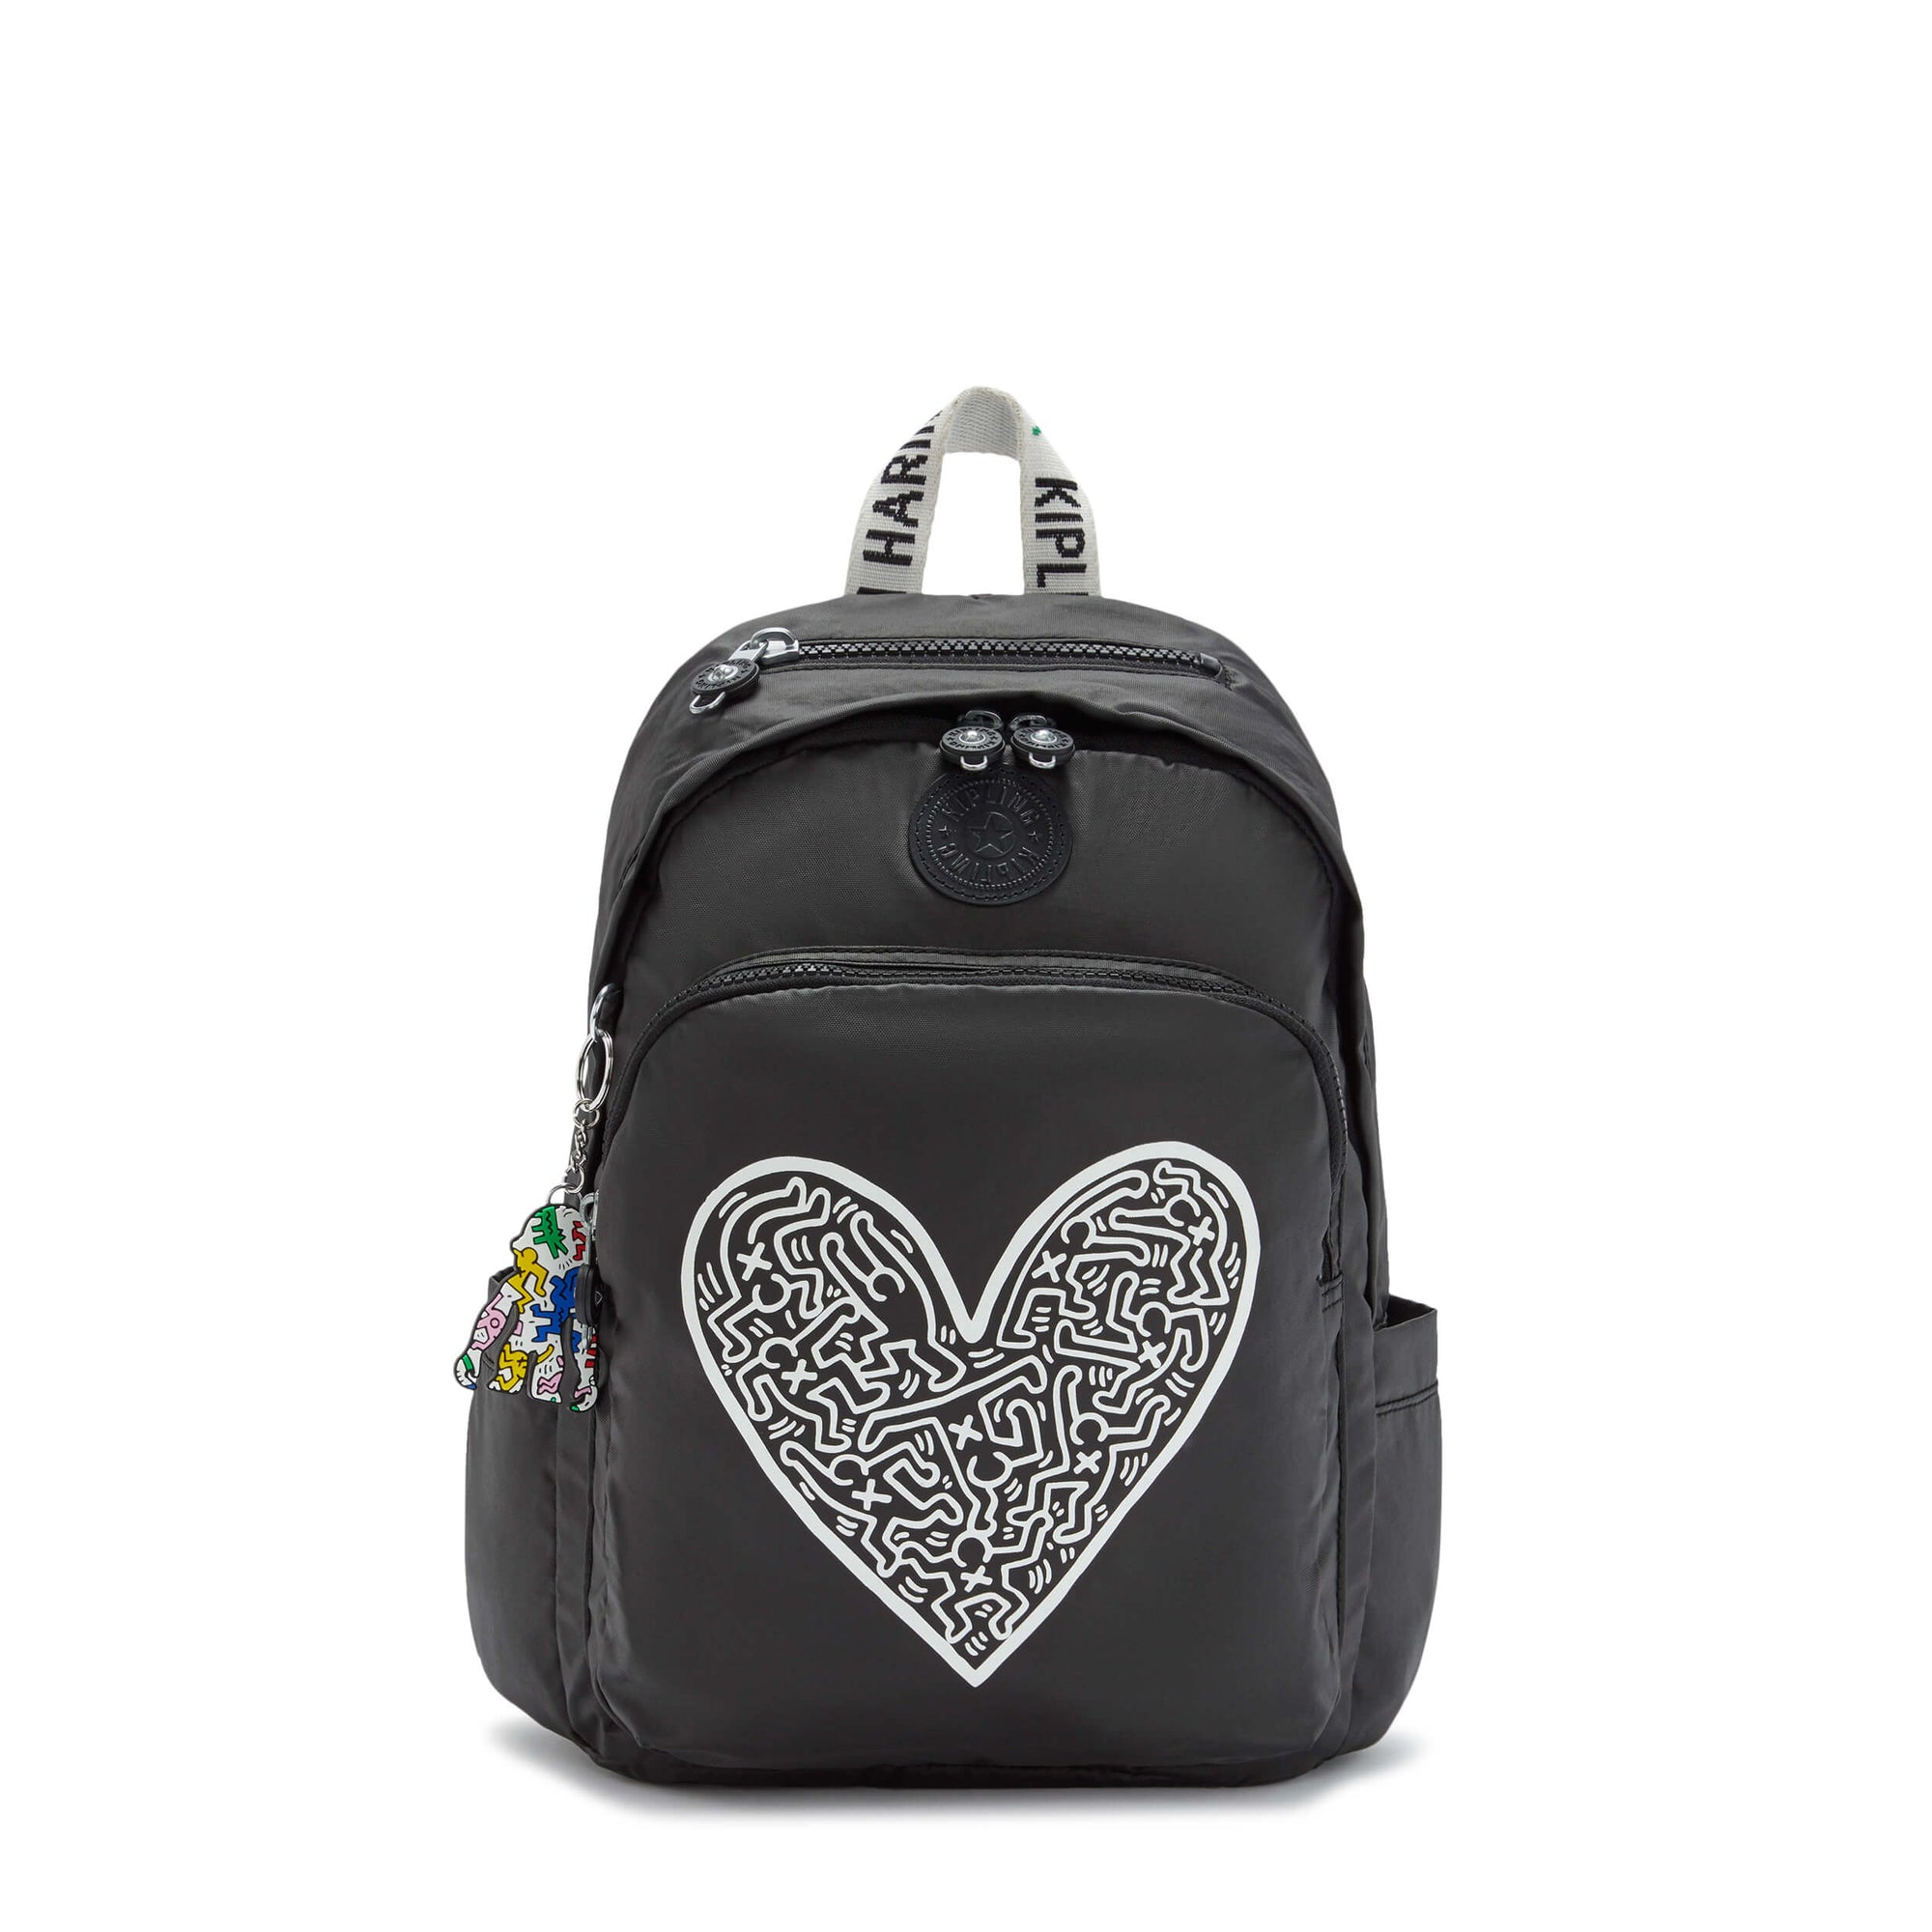 Backpack Kipling Delia - Keith Haring